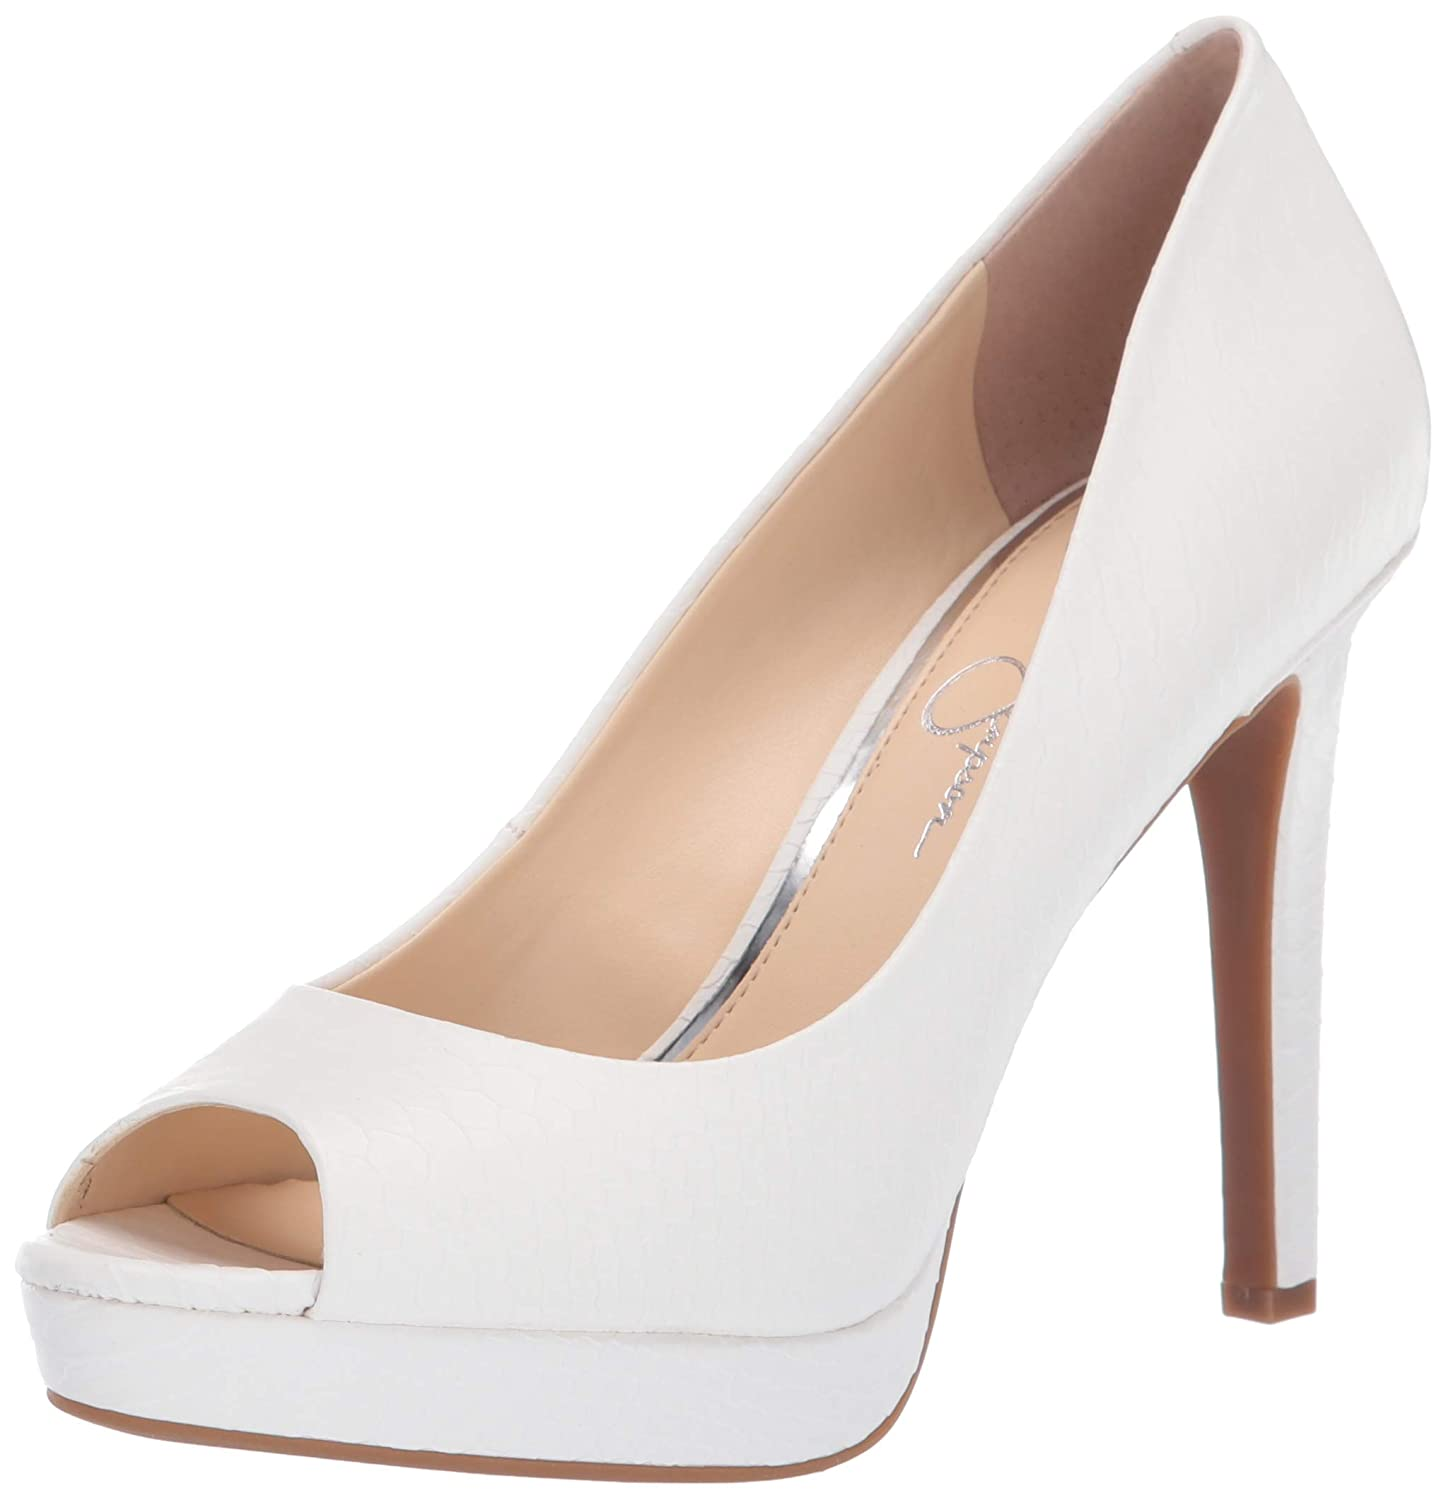 Powder Jessica Simpson Women's Dalyn